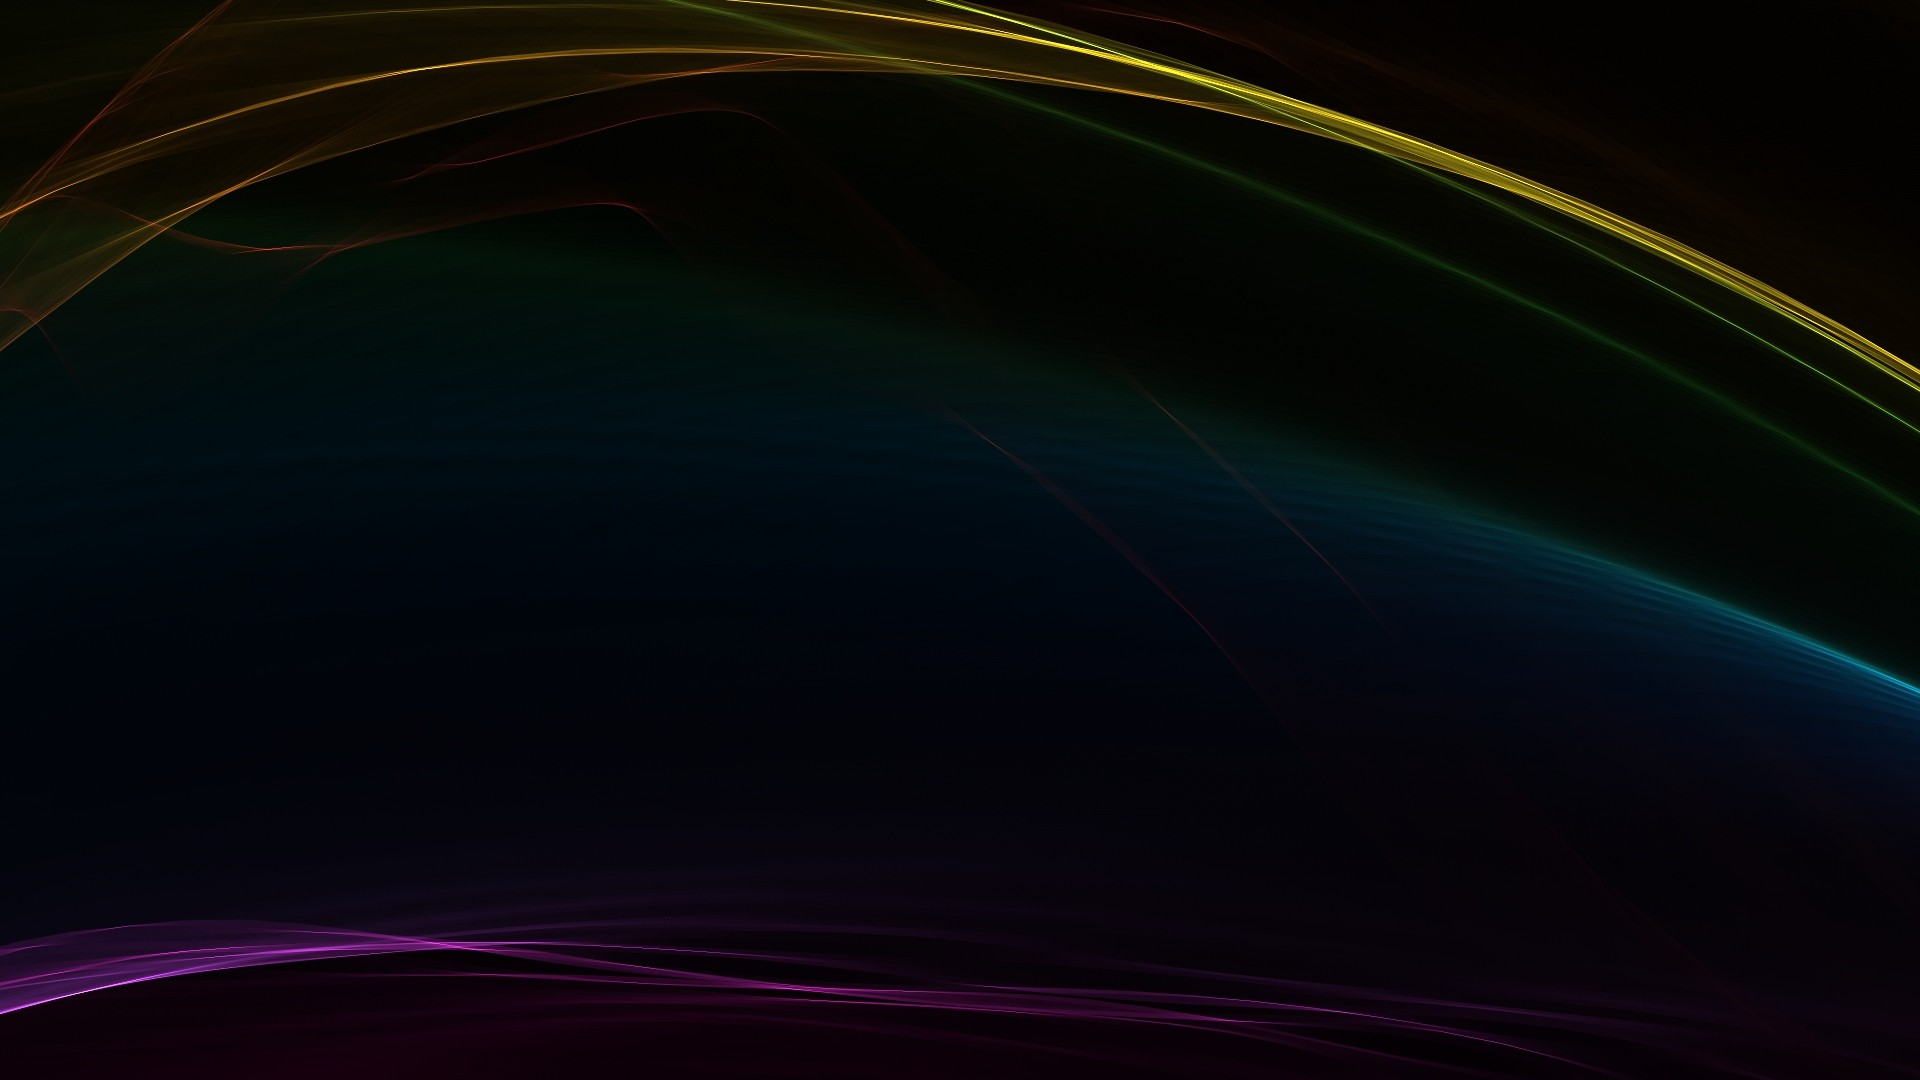 Abstract Black Wallpaper 1920x1080 Abstract, Black, Minimalistic ...